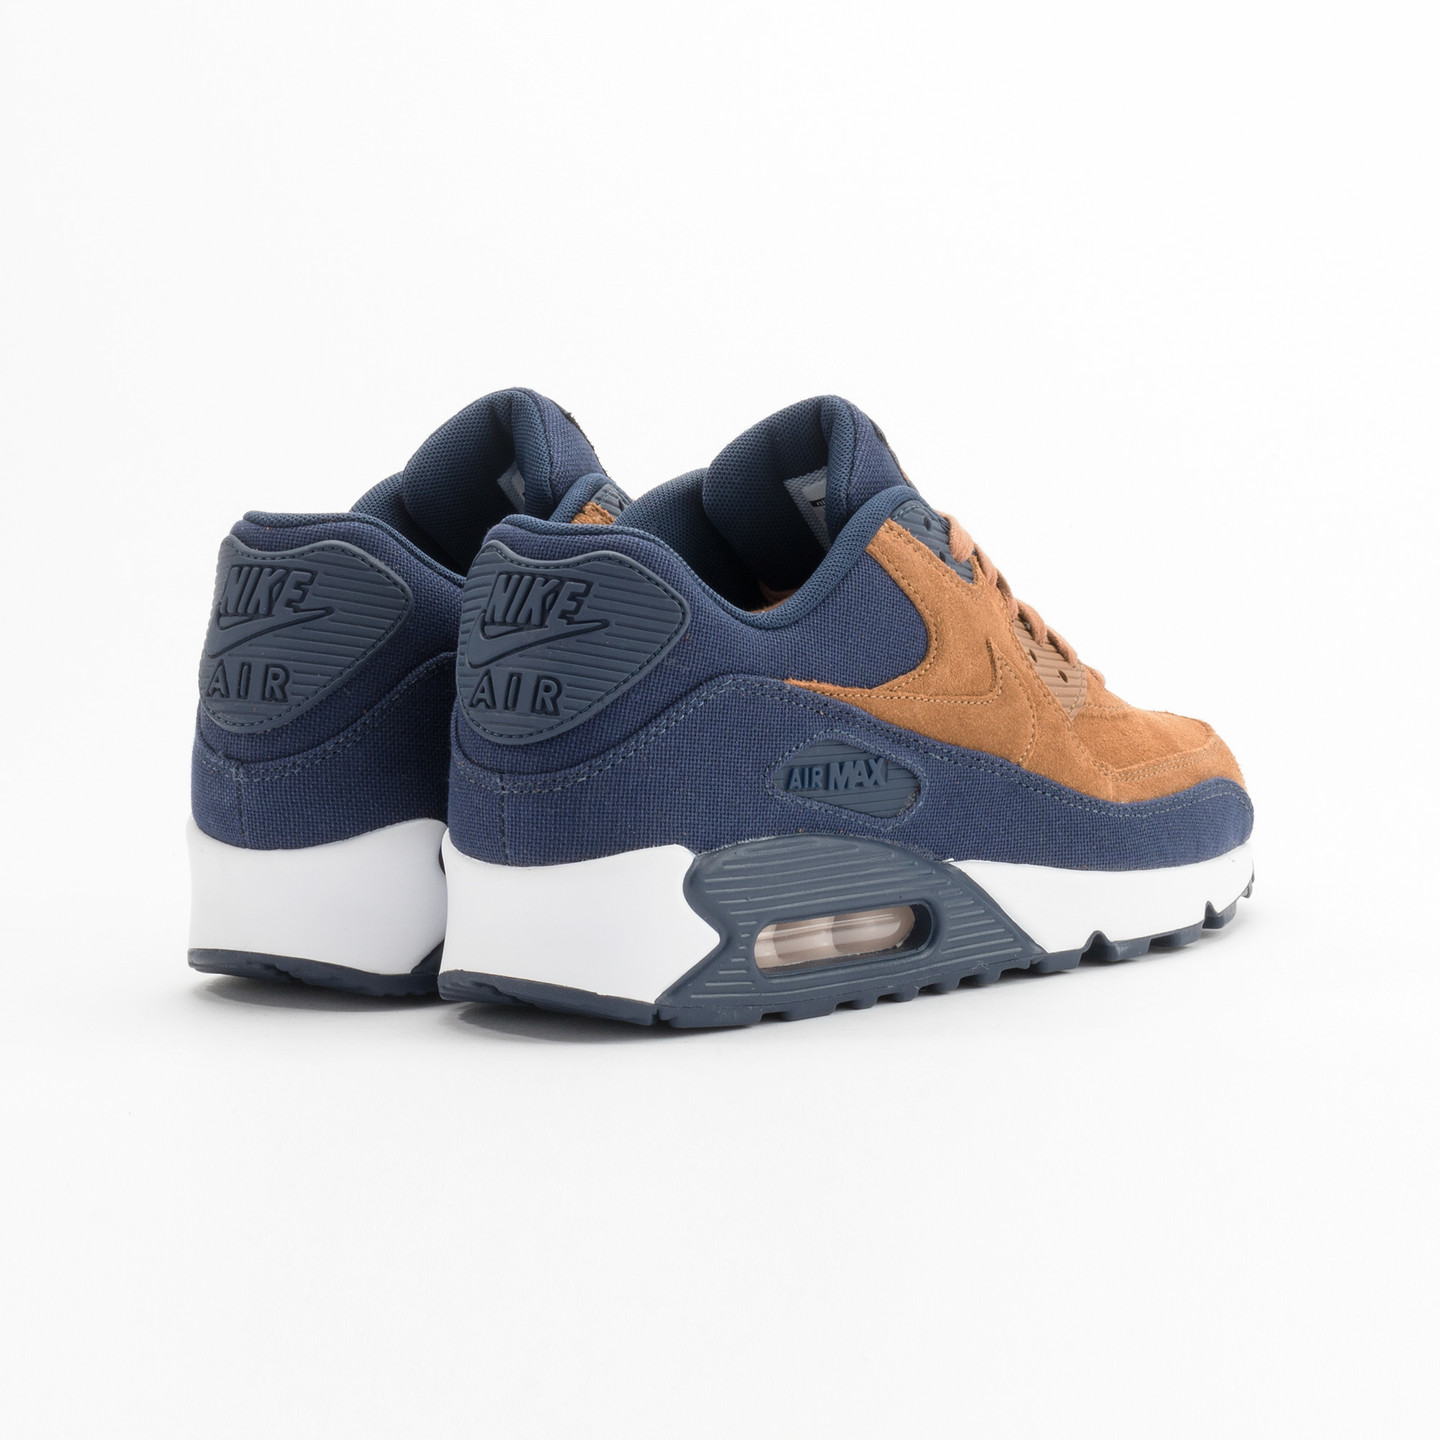 Nike Air Max 90 Premium Ale Brown / Midnight Navy 700155-201-41